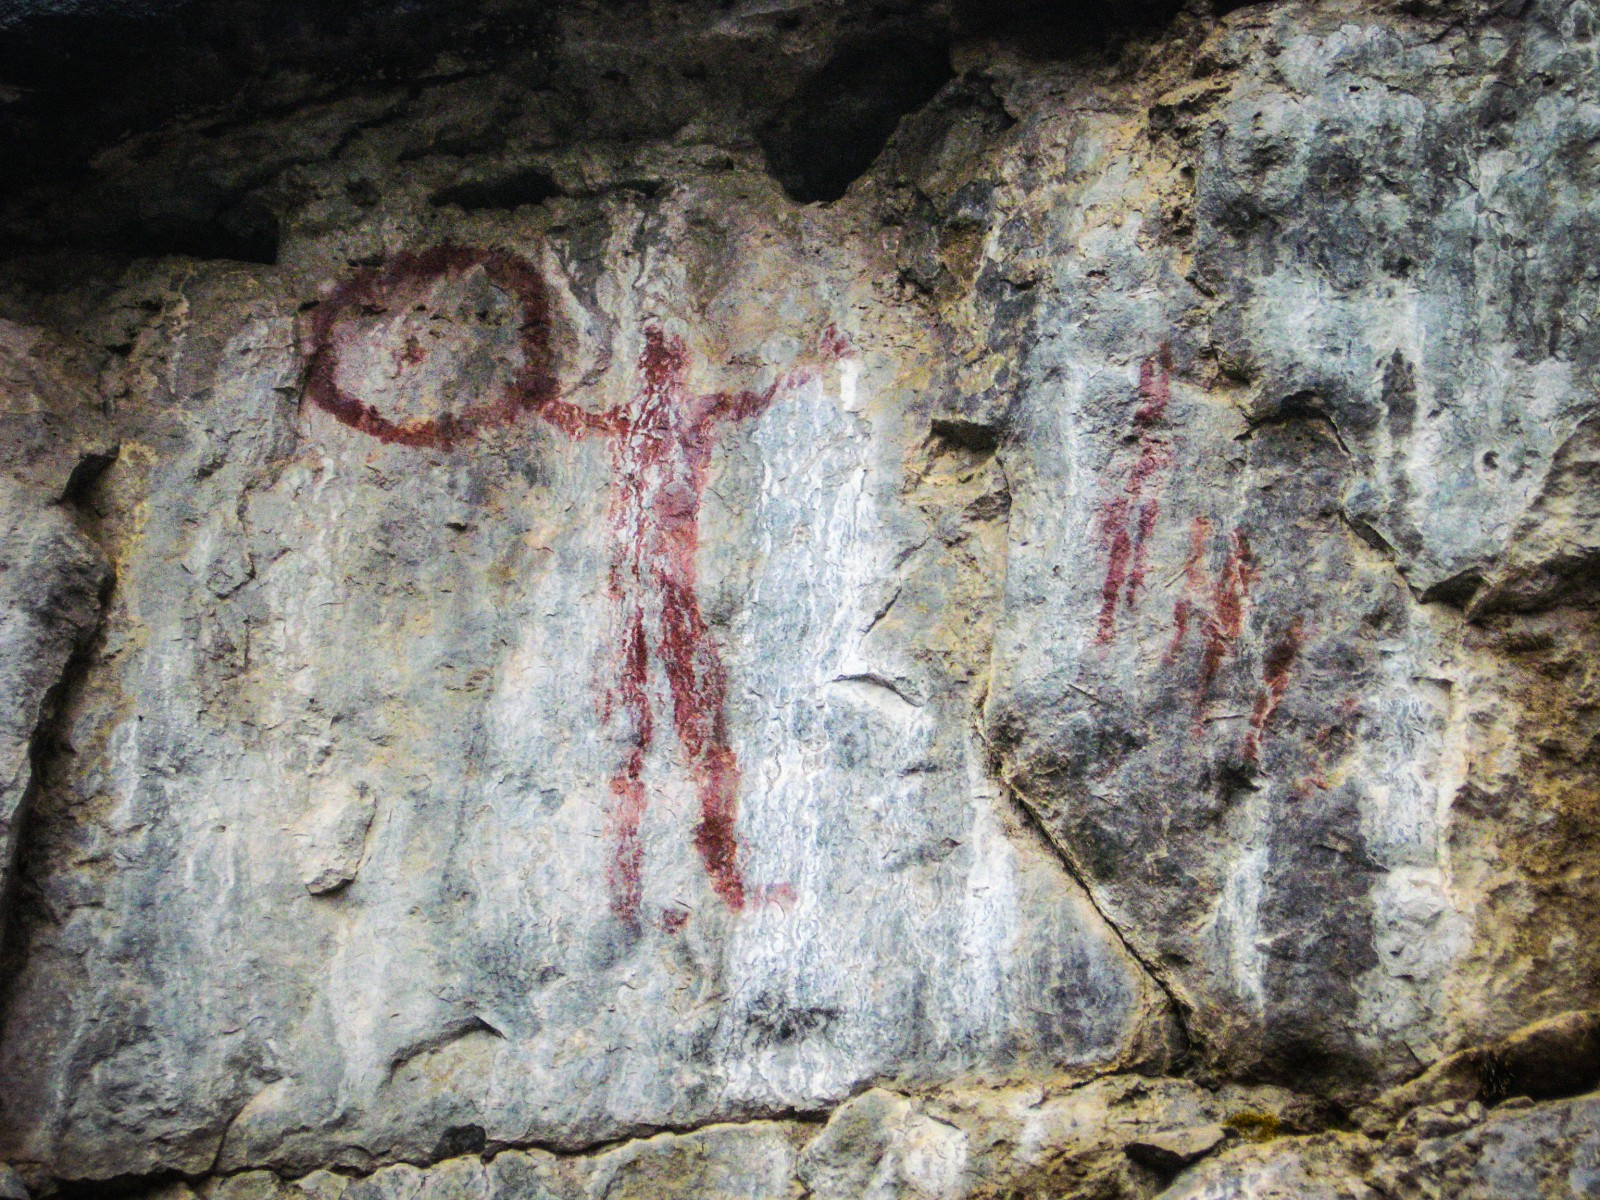 The pictographs in the Grassi Lakes area are thought to date back more than 1,000 years. (Photo: Maureen Flynn-Burhoe via Flickr, CC BY-NC-SA 2.0)